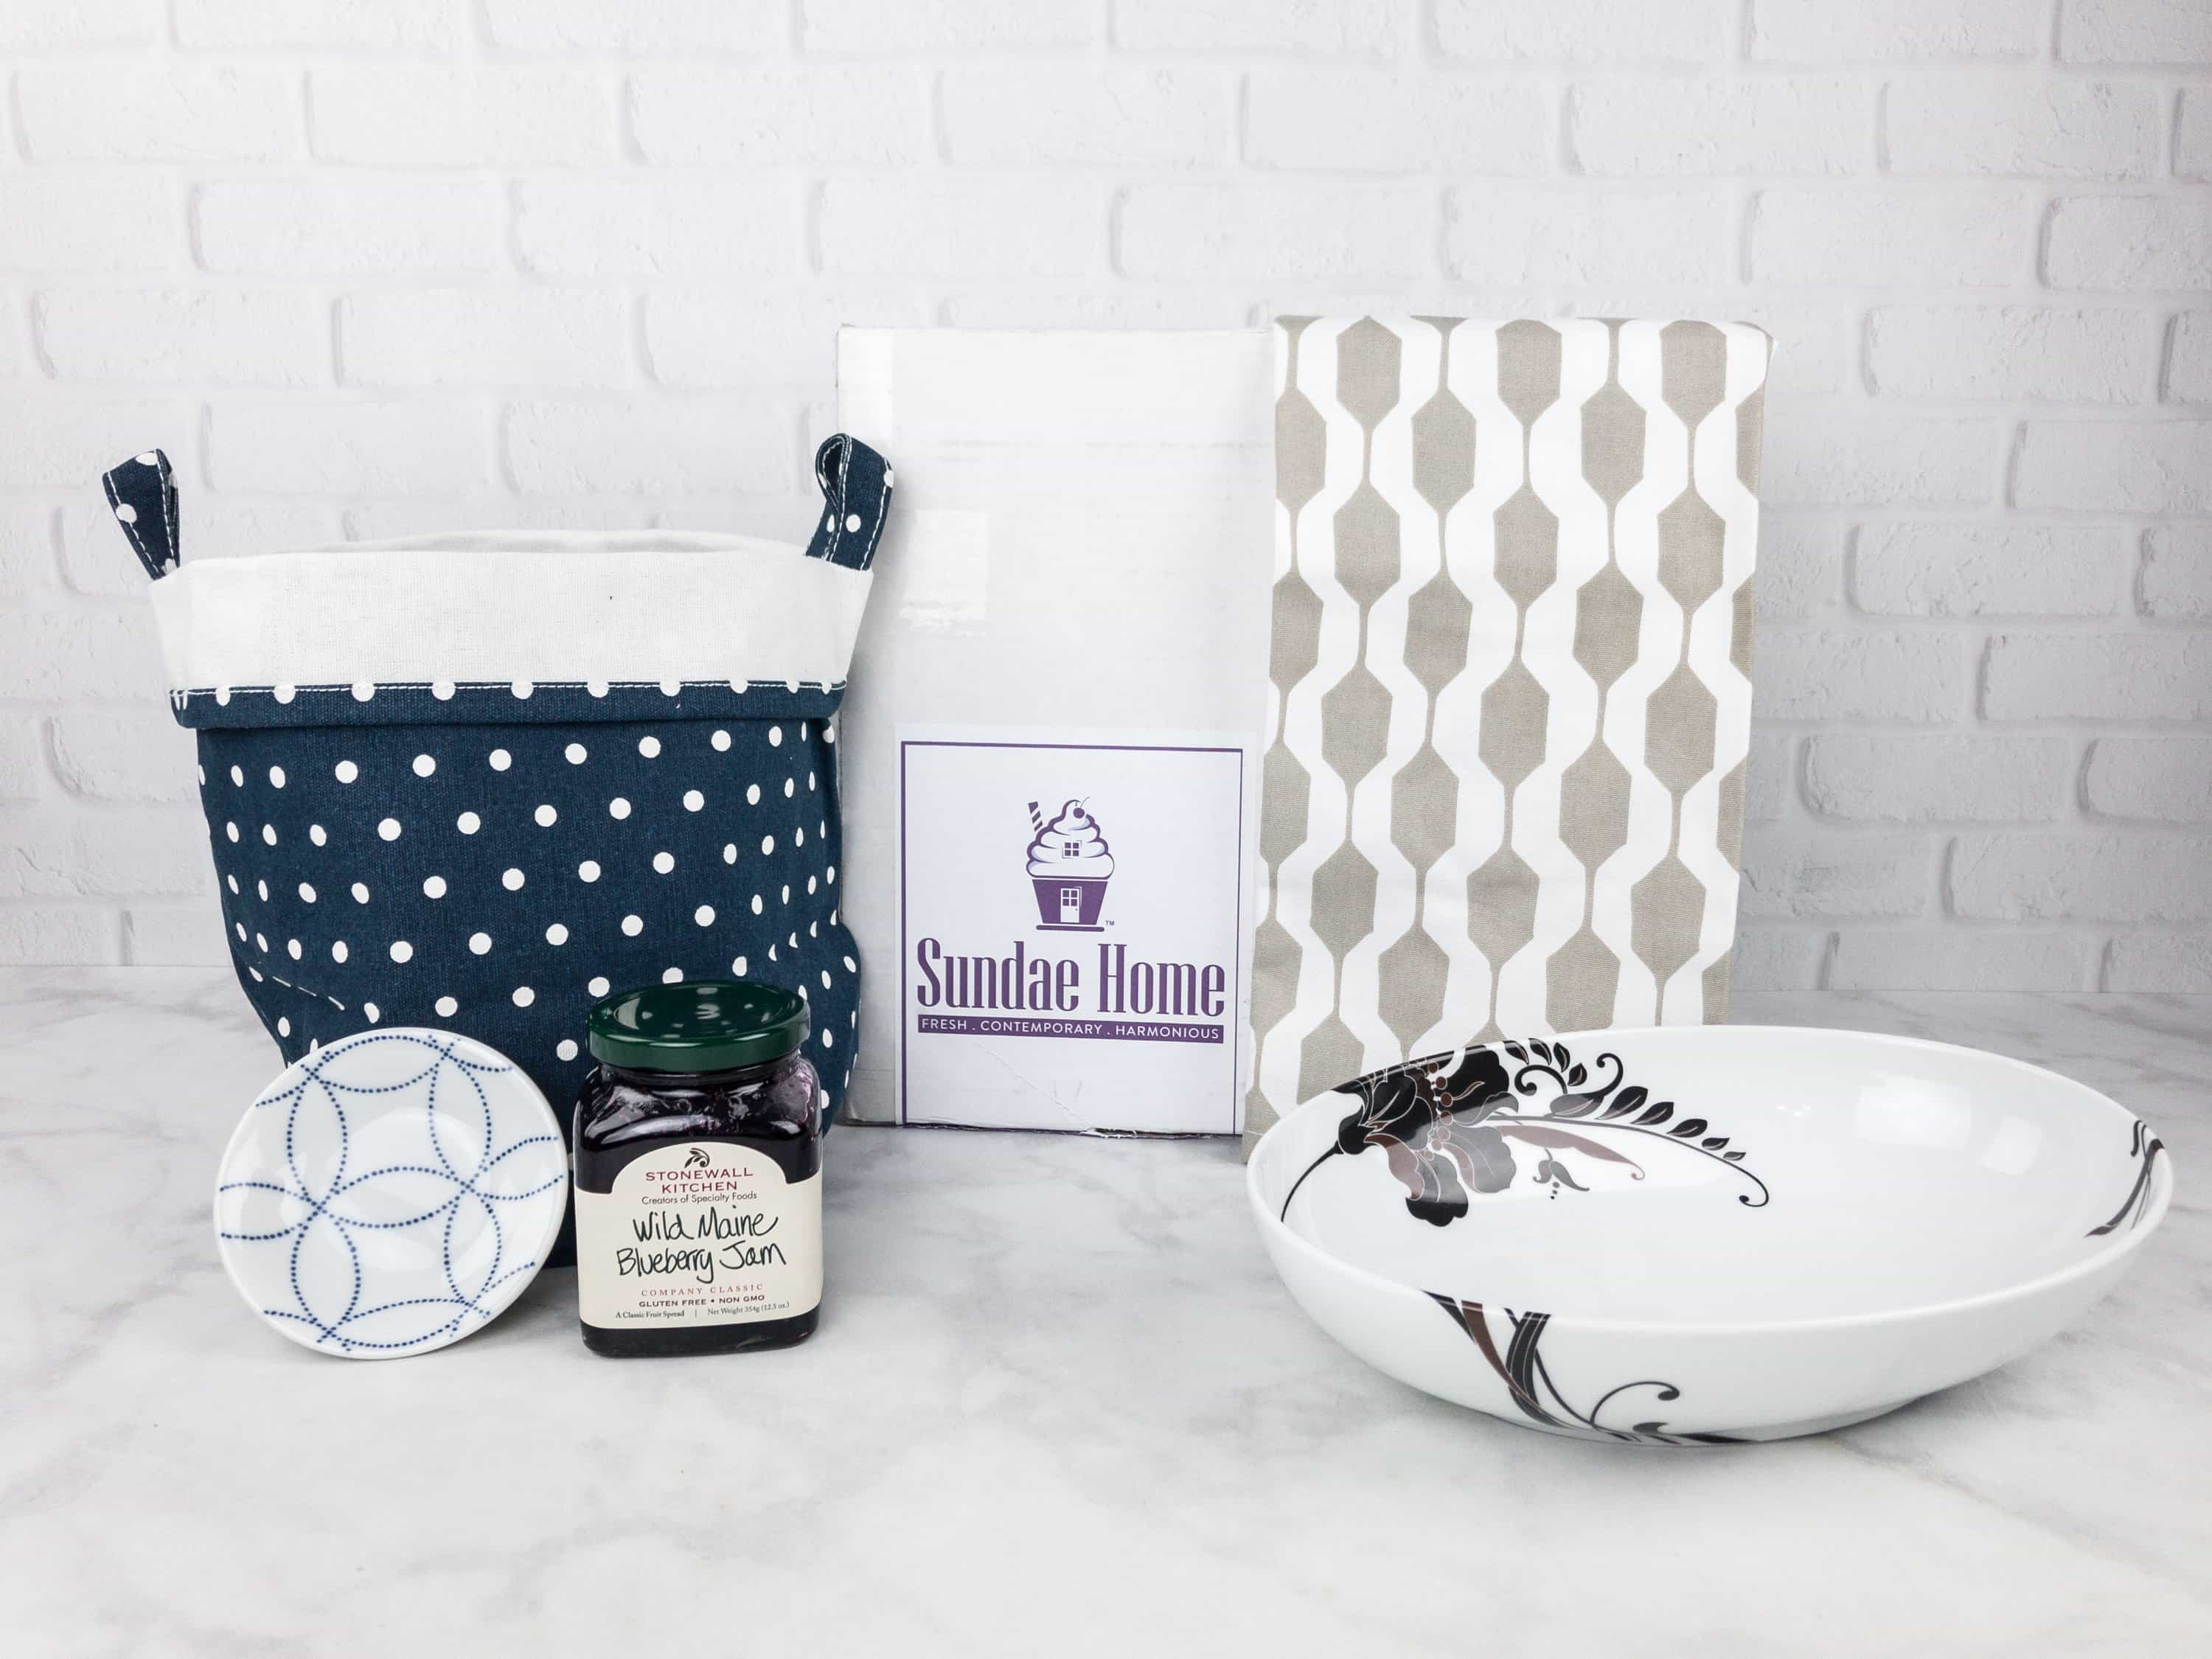 Sundae Home September 2017 Subscription Box Review + Coupon!